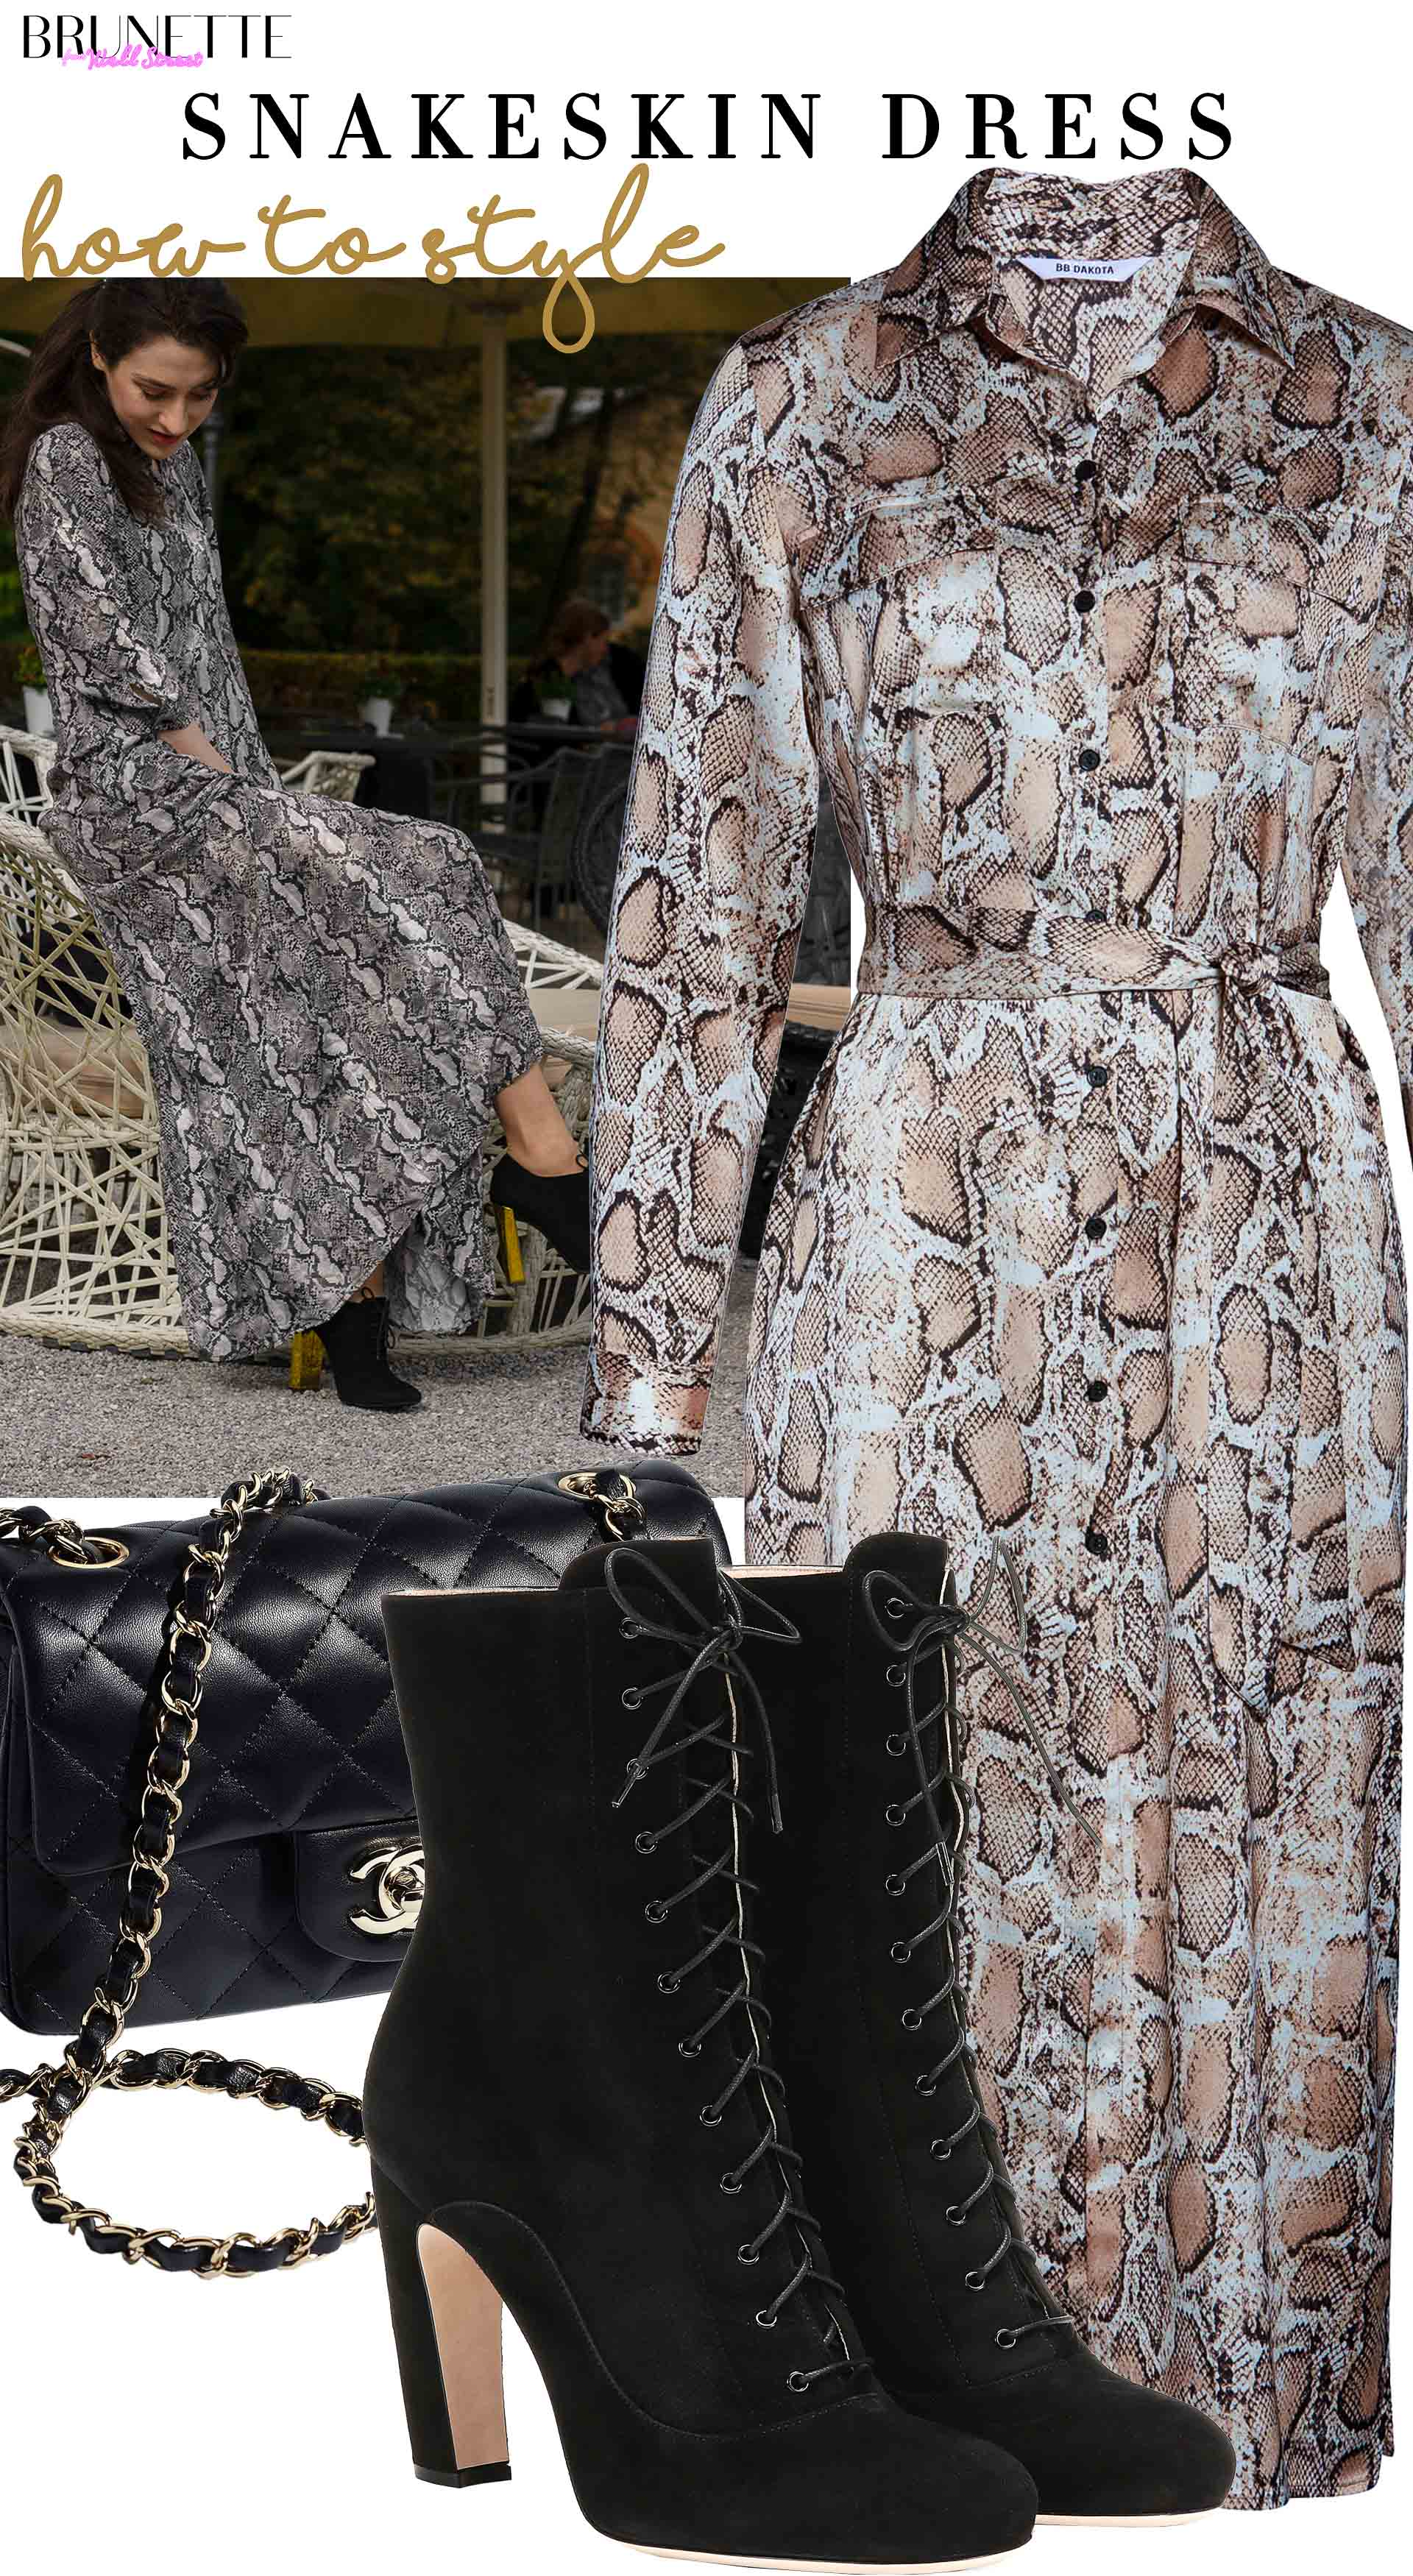 Brunette from Wall Street how to style long snakeskin dress Chanel flap bag black lace-up ankle boots fall brunch lunch date